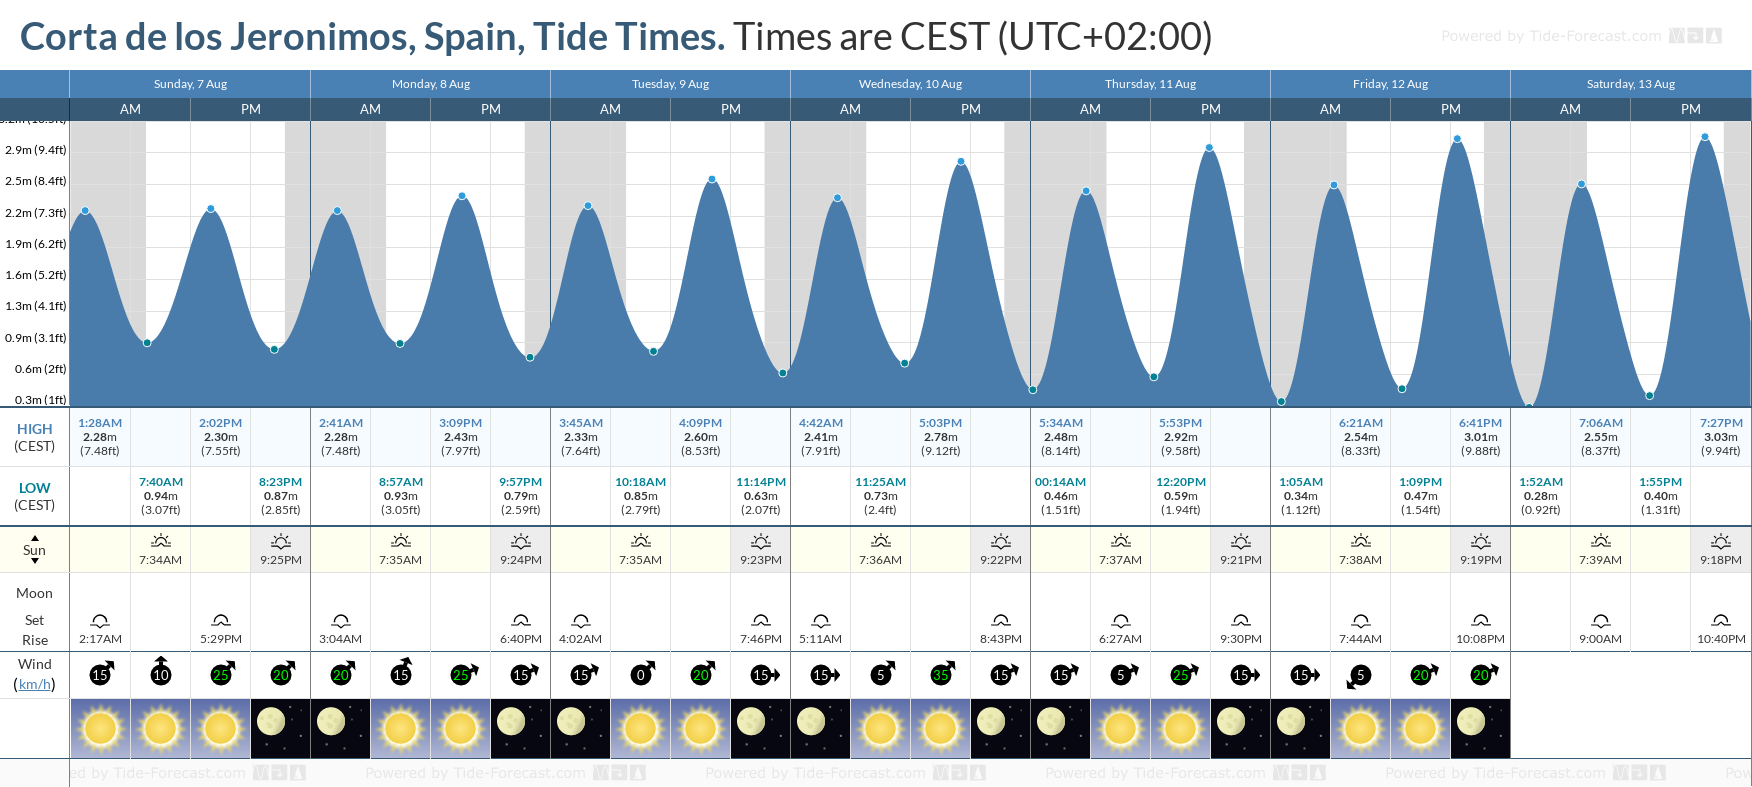 Corta de los Jeronimos, Spain Tide Chart including high and low tide tide times for the next 7 days